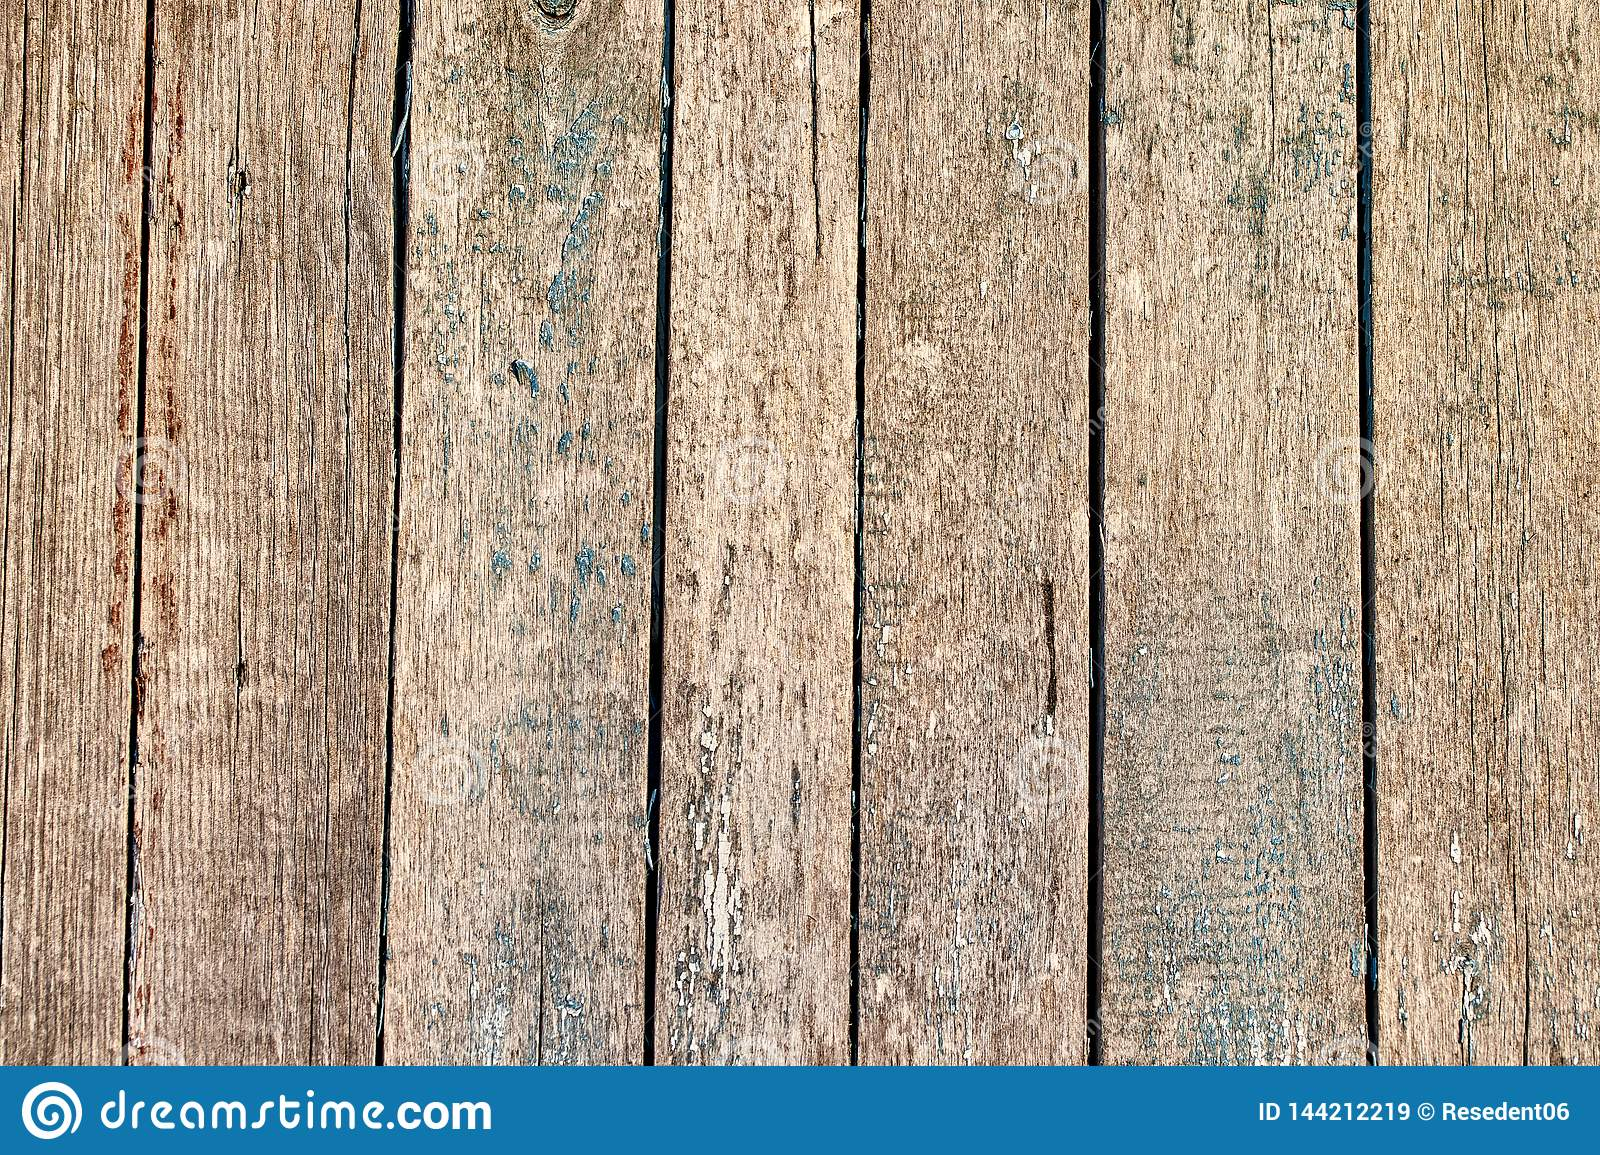 Old wooden texture vertical boards abstract background surface